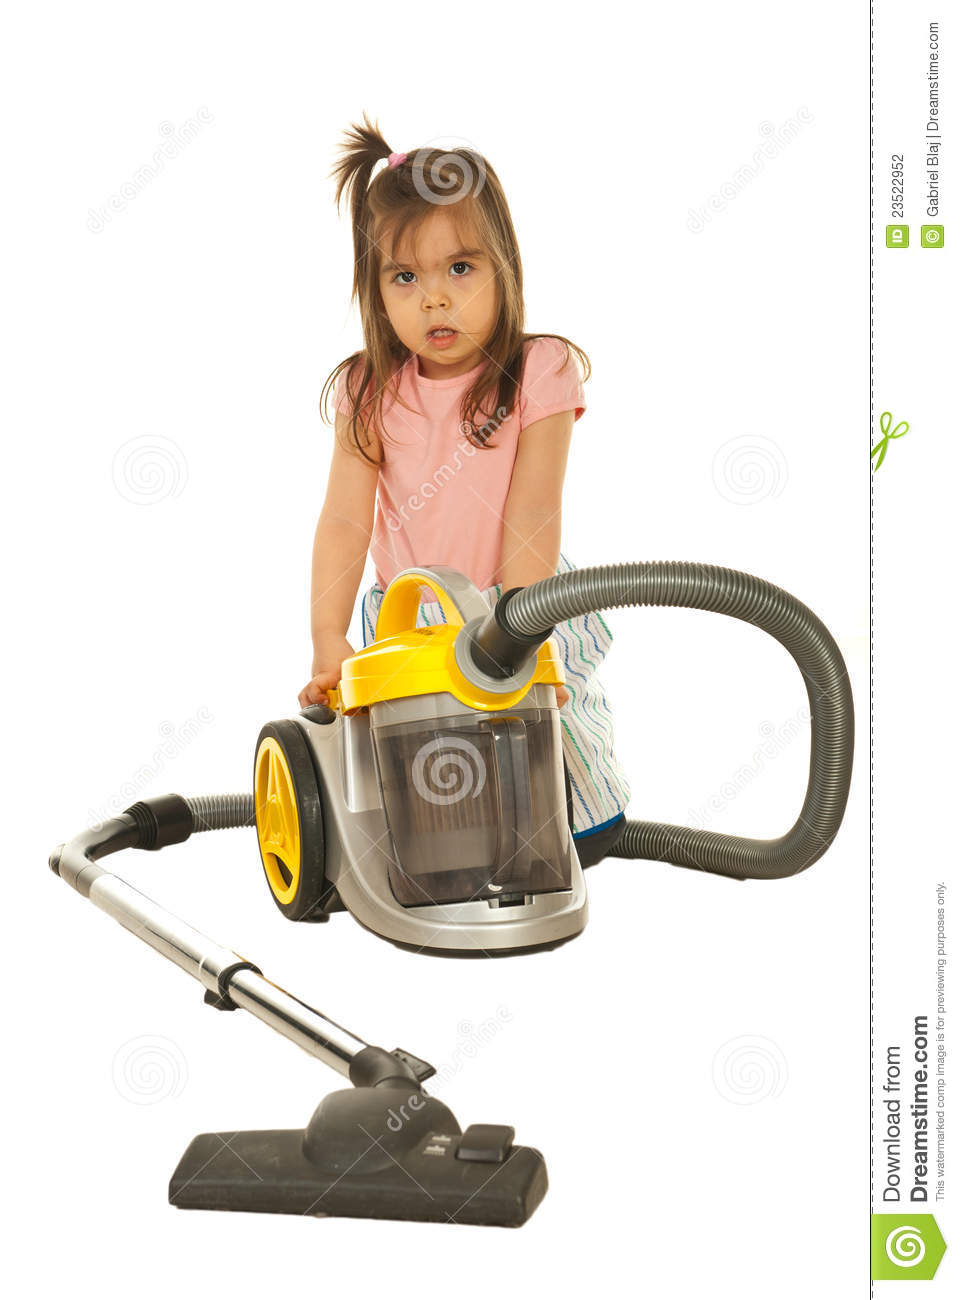 Confused Little Girl With Vacuum Cleaner Stock Photo